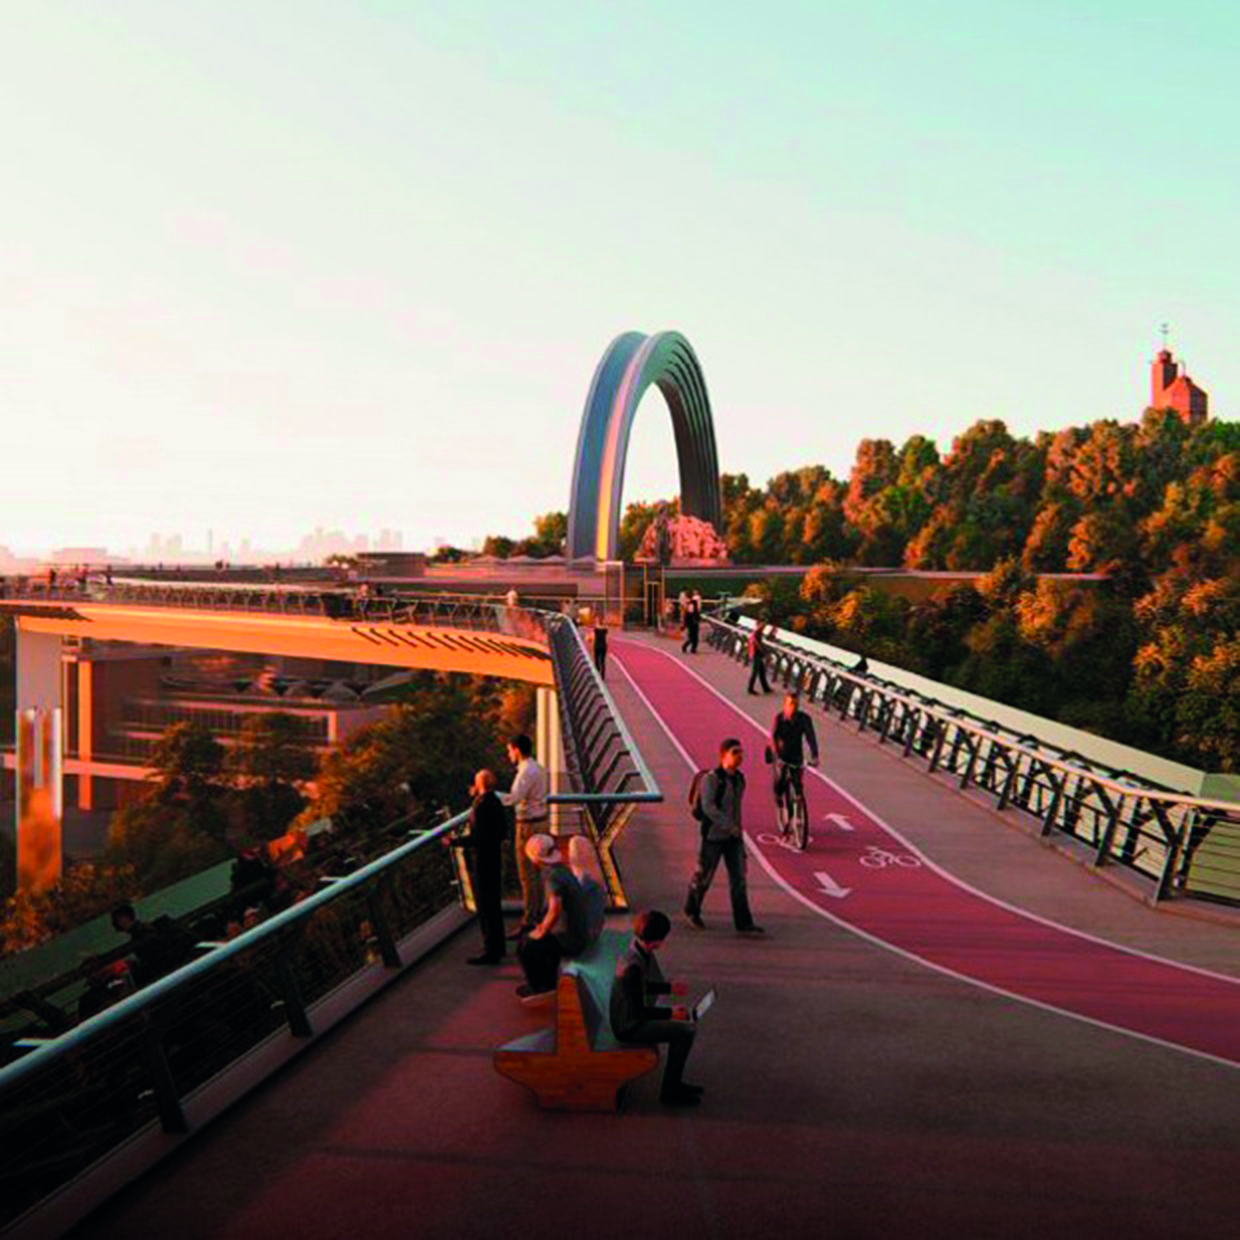 What's Up with the Footbridge?